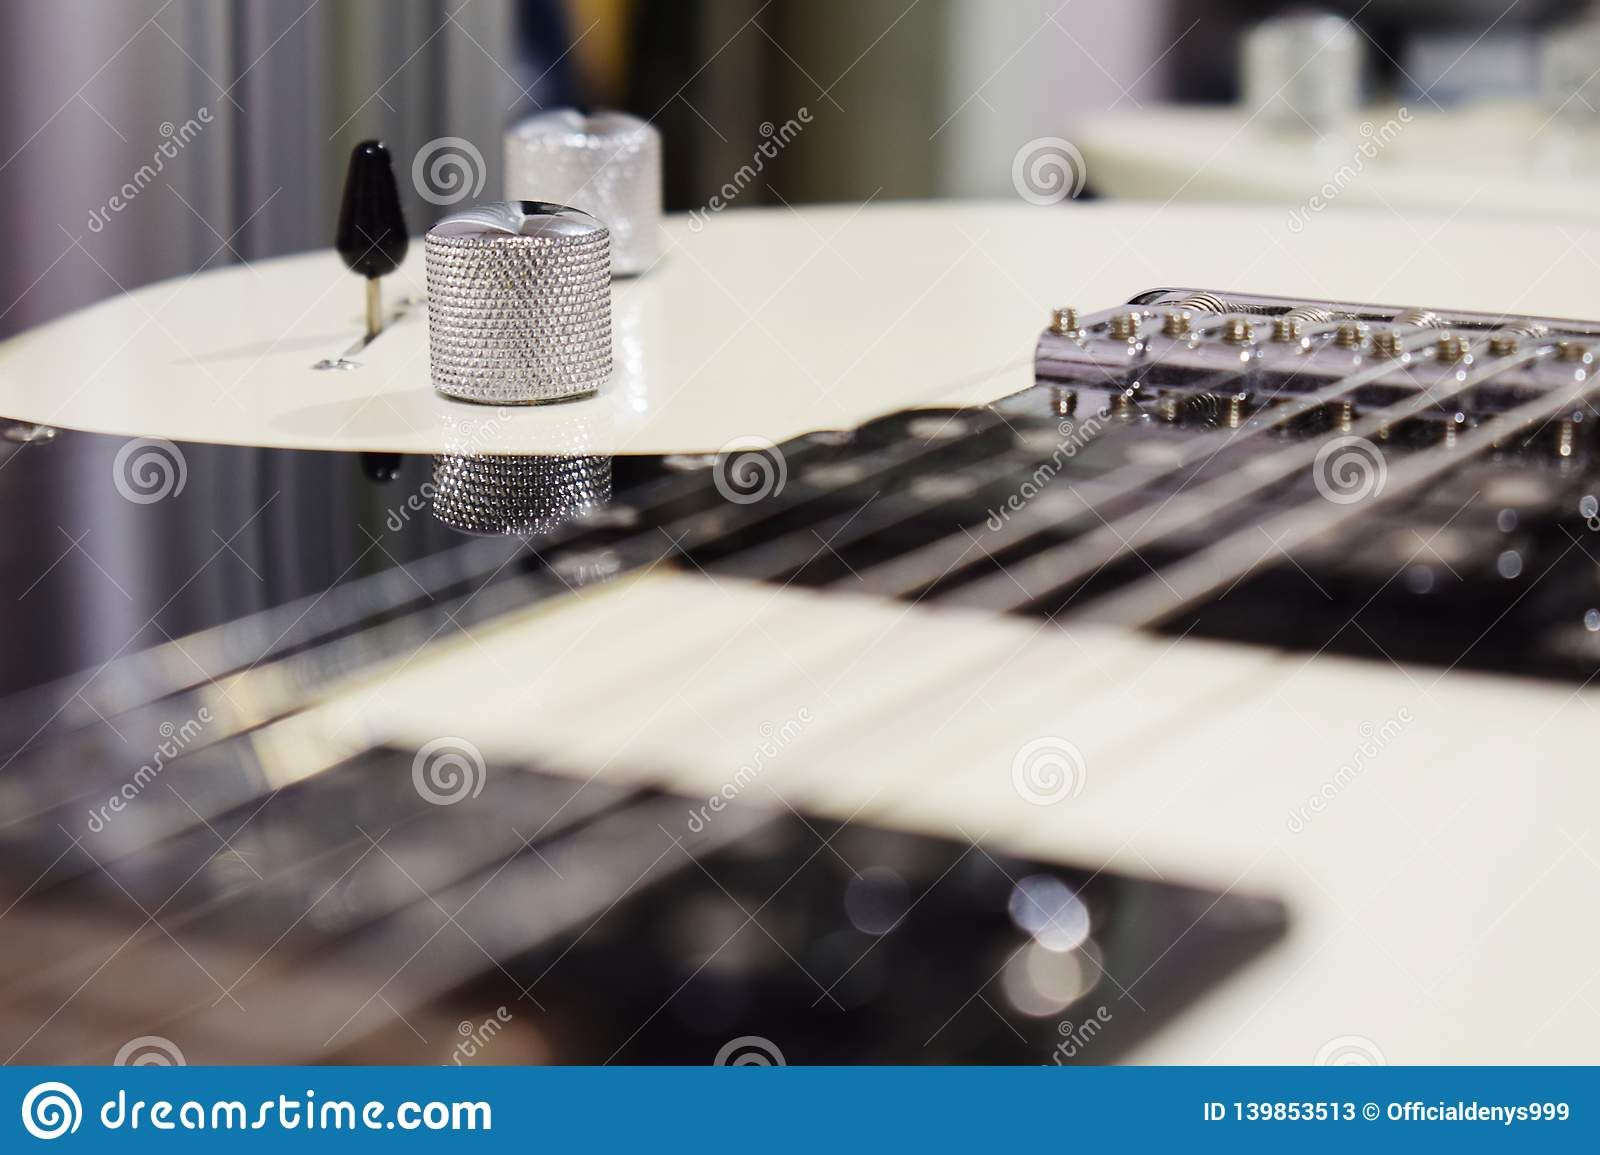 Knobs on a electric guitar, part of an electric guitar